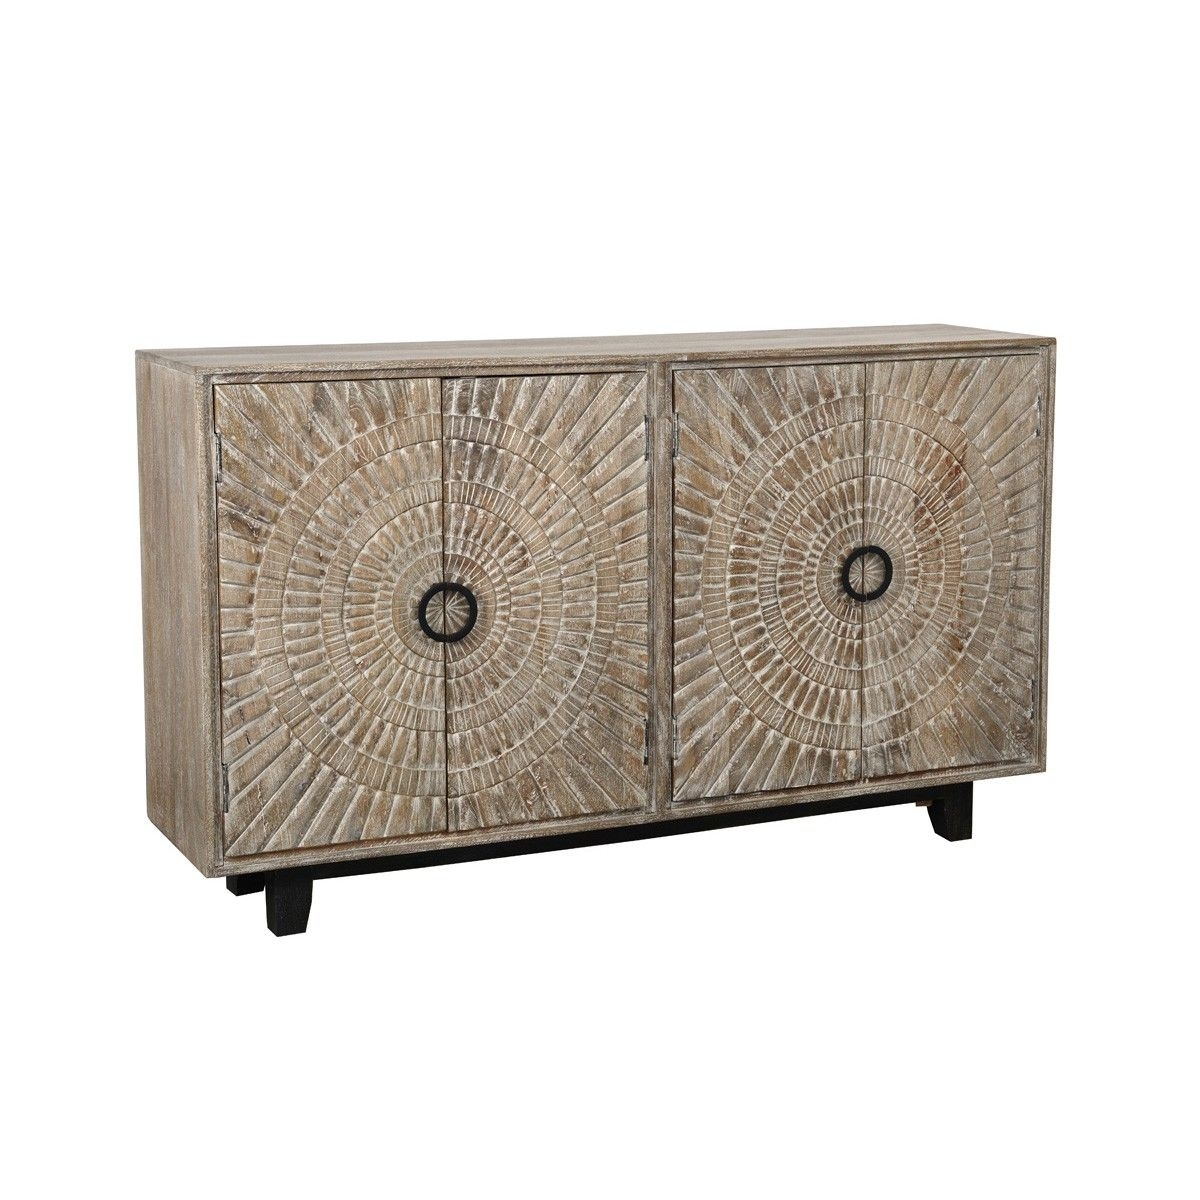 Vivienne 4Dr Sideboard - Cabinets - Furniture - Products throughout Mid Burnt Oak 71 Inch Sideboards (Image 28 of 30)